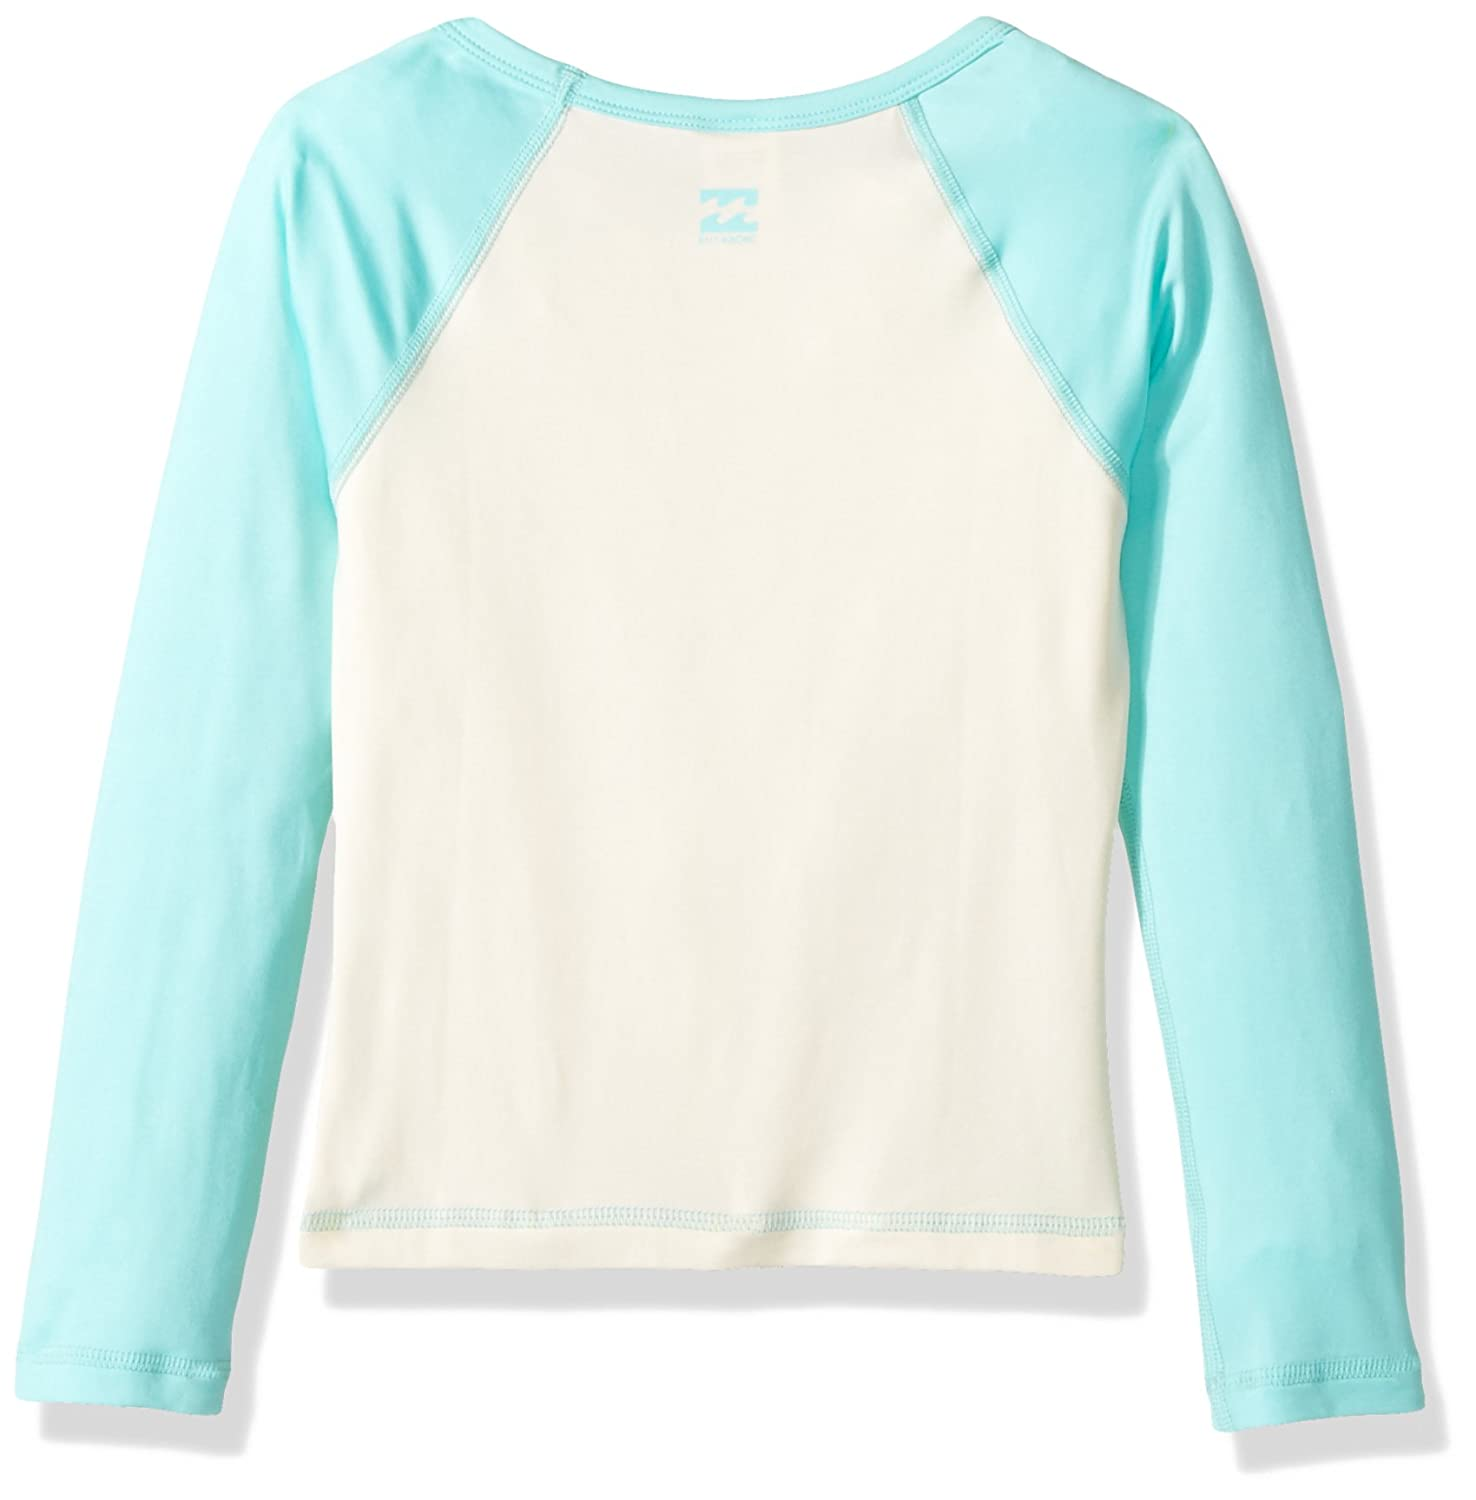 BILLABONG Girls Sol Searcher Long Sleeve Rashguard